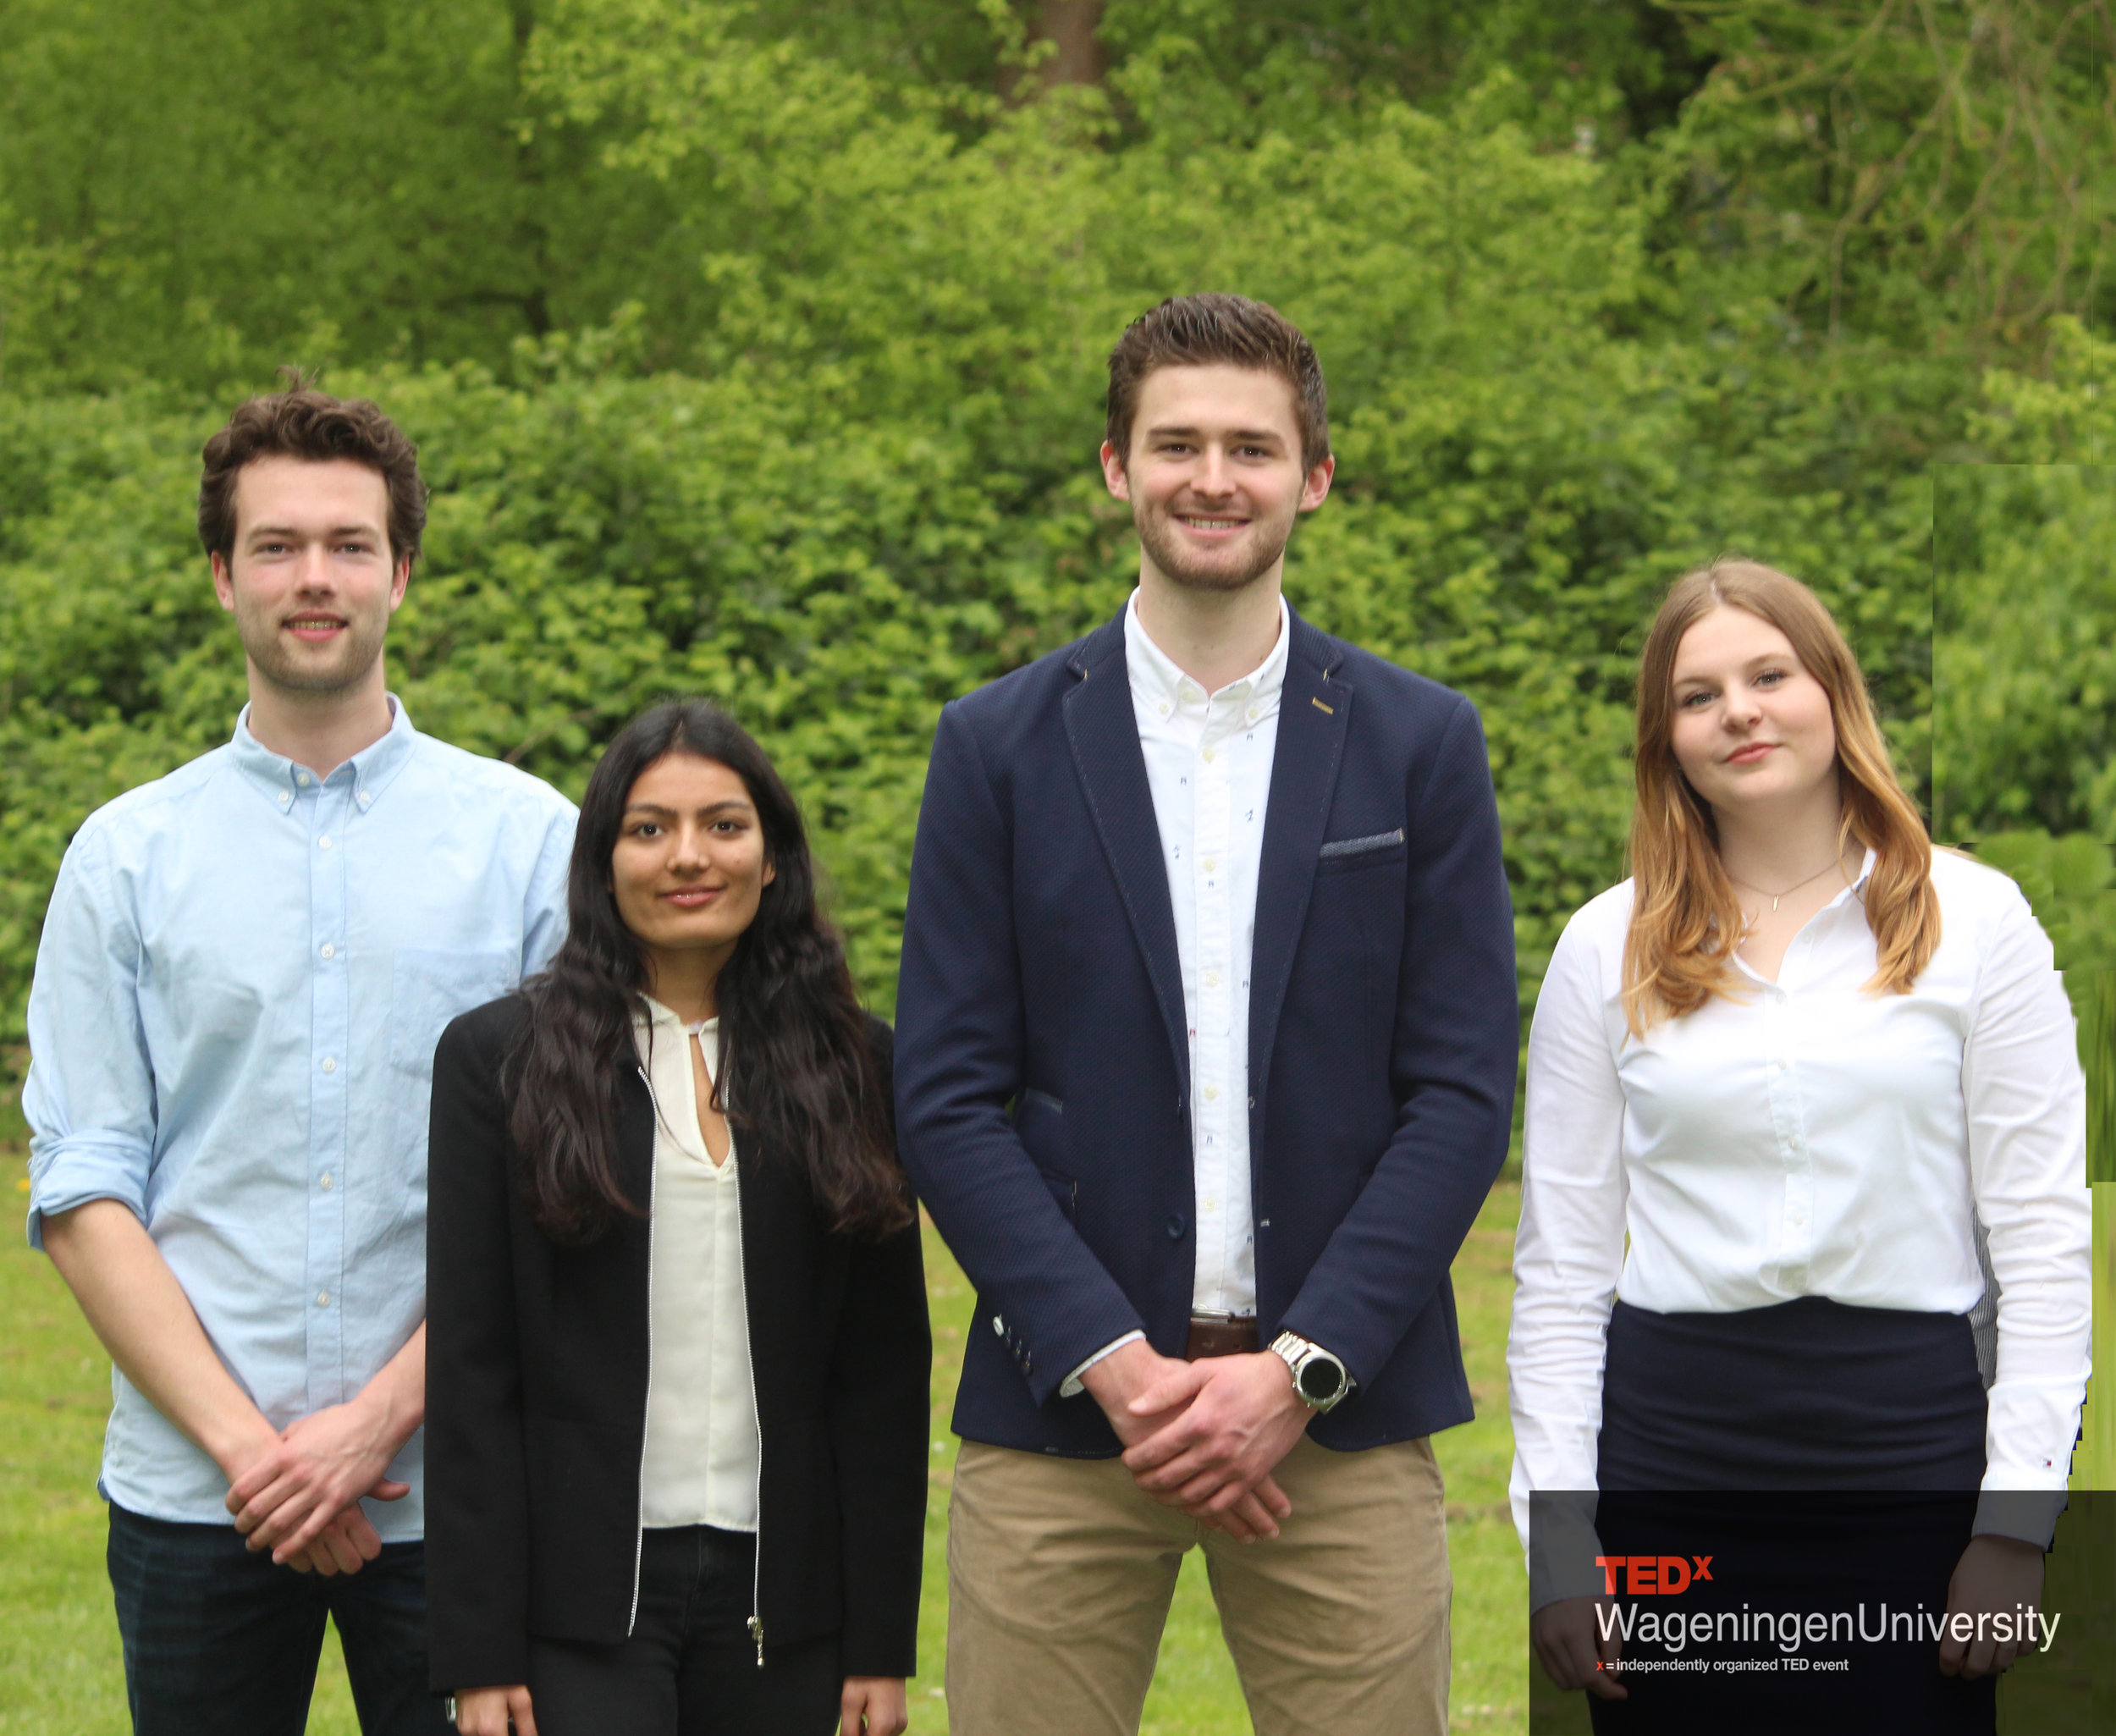 Acquisition - The team is lead by Johan Aarnoudse, and supported by Janique Groenenberg, Tanvi Taparia and Wessel van Winden. Making the event possible in financial terms is our responsibility. We are determined to find the best fitting partners for all our events and make sure that everyone connected to TEDx Wageningen University will benefit optimally. We hope anyone involved in our events can have a great experience, no matter you are partners, speakers attendants, or others supporting us! We also hope TEDx Wageningen University to become a well-known event in the Netherlands, something to look forward to for many years to come!